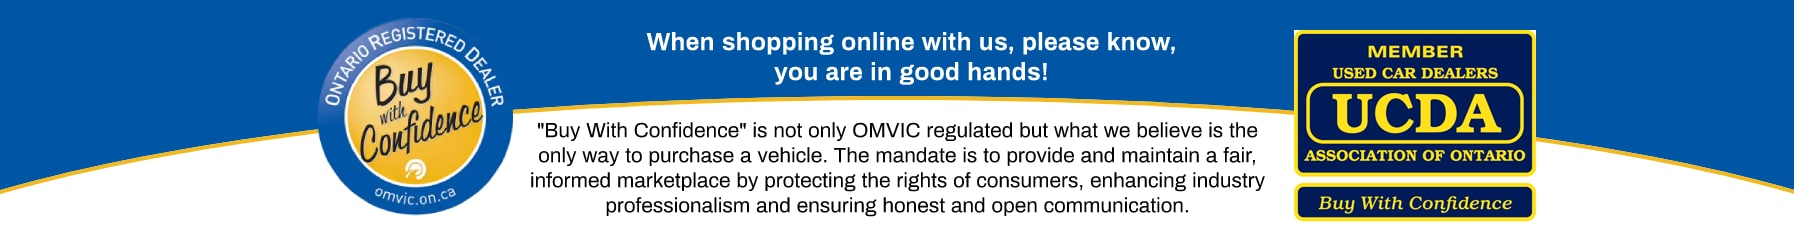 Buy with Confidence - Ontario Vehicle Sales Regulator